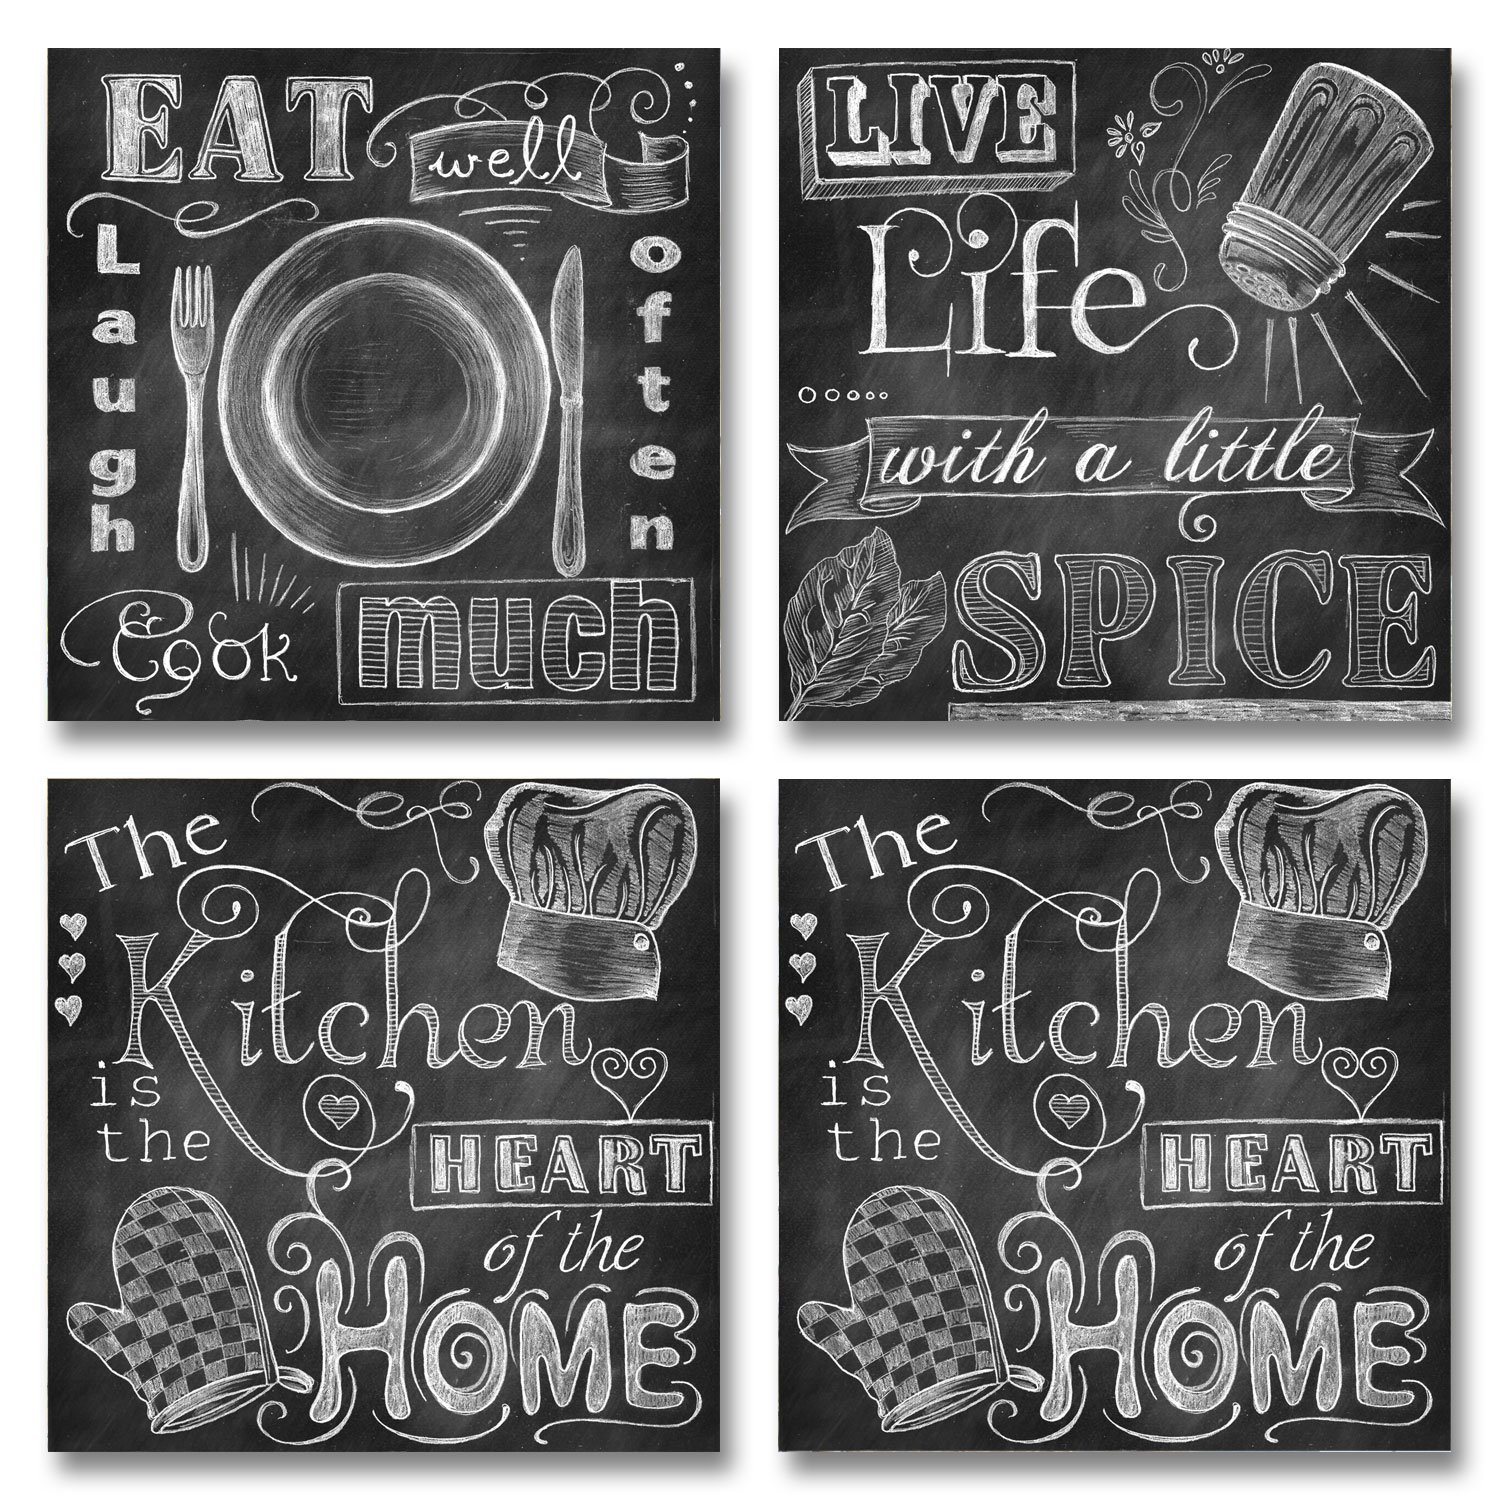 Beautiful, Fun, Chalkboard-Style Kitchen Signs; Messy Kitchen, Heart of the Home, Spice of Life, and Cook Much; Four 8x8in Paper Poster Prints (Printed on paper made to look like chalkboard) Gango Home Decor